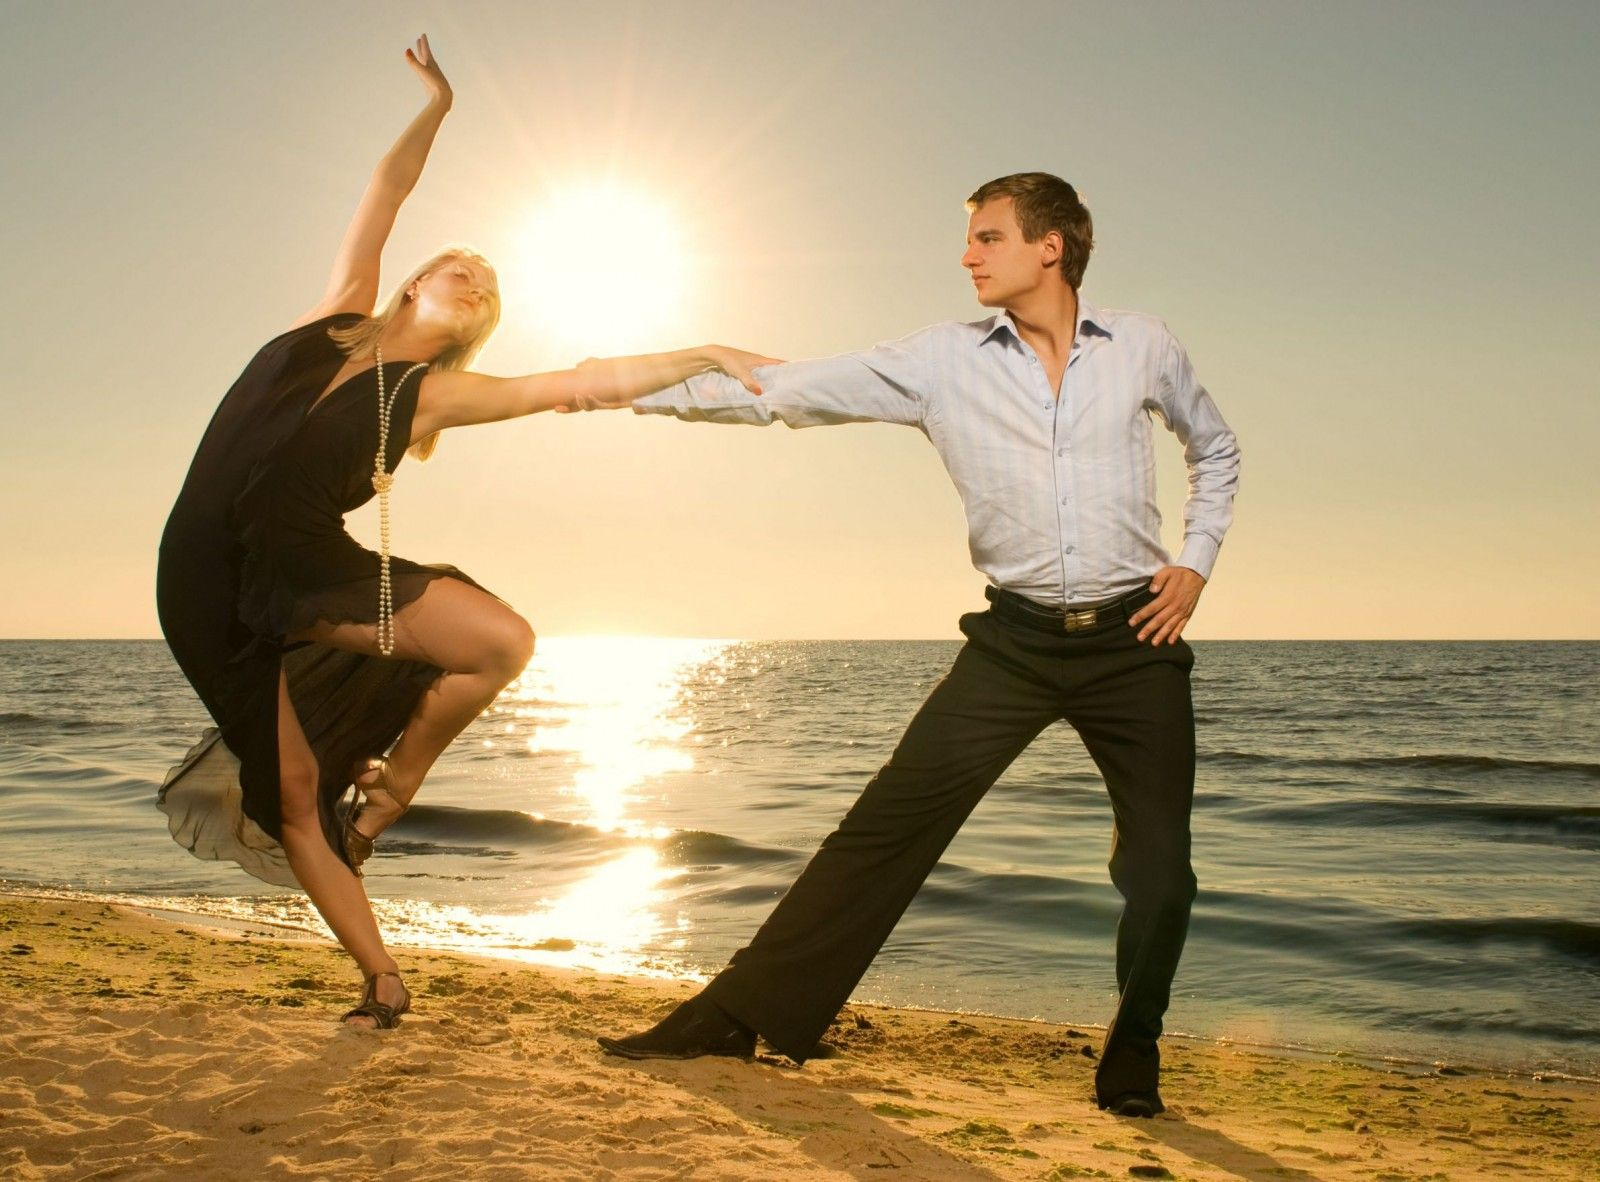 Love Couple Wallpaper Beach Pictures Ideas Of Couple Photo 1600x1182